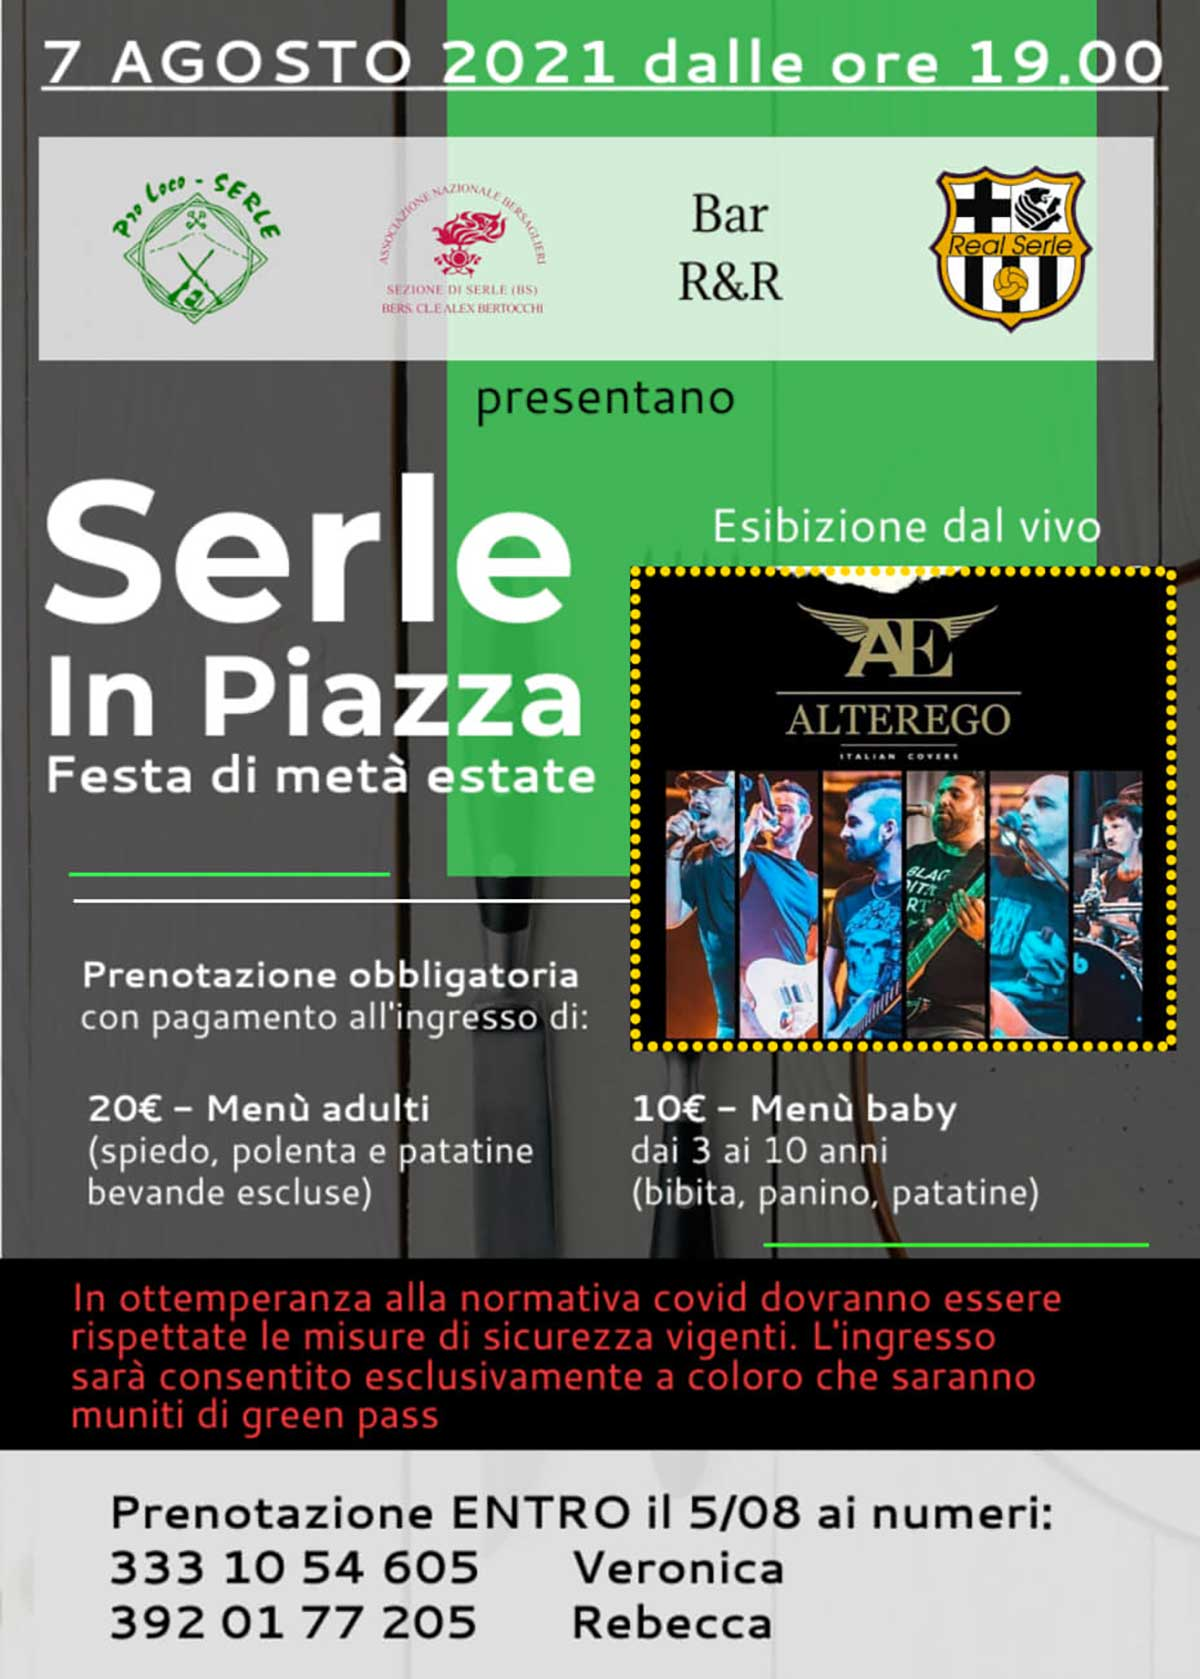 serle-in-piazza-2021